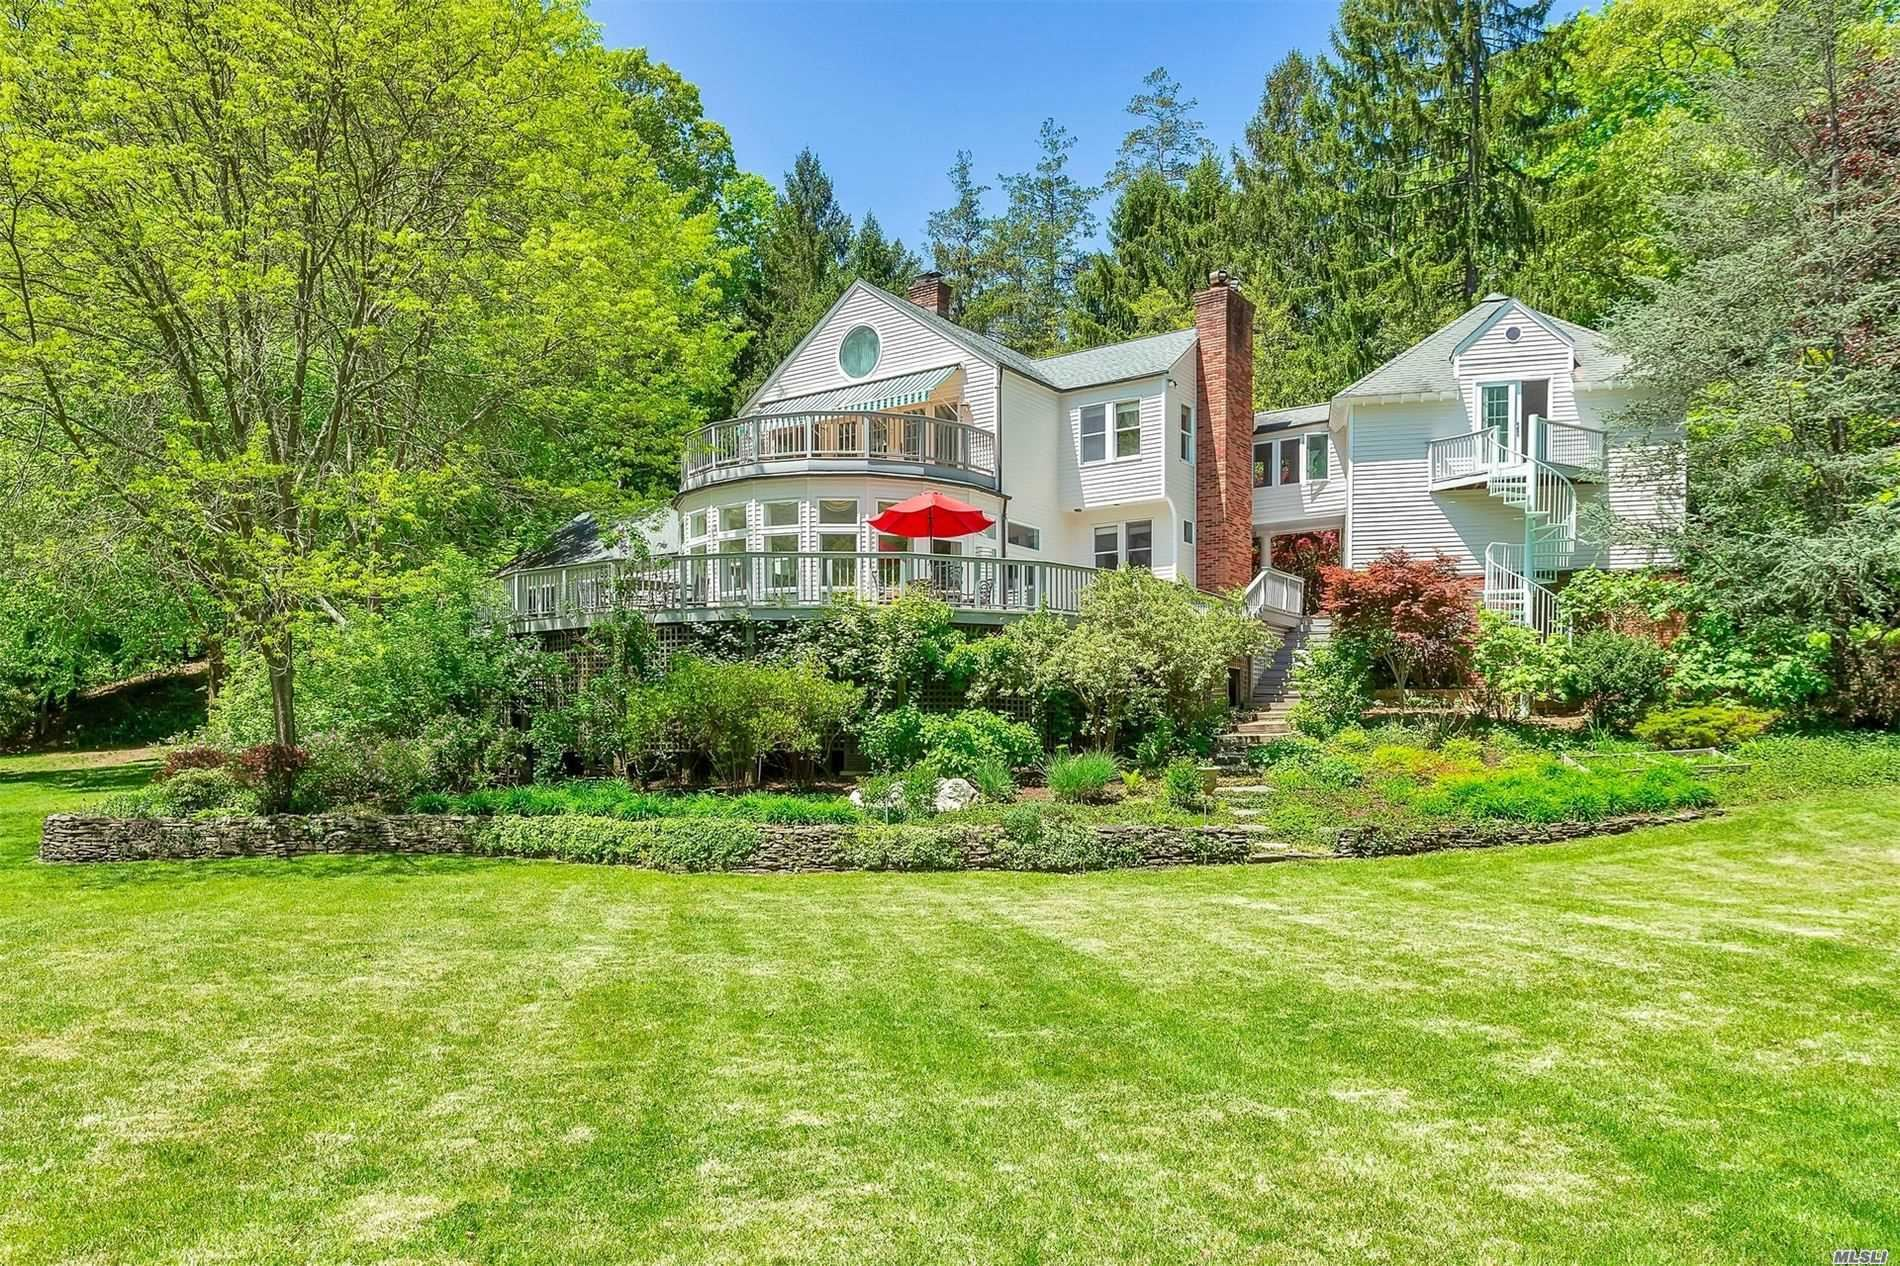 Photo of 18 Tennis Court Road, Cove Neck, NY 11771 (MLS # 3123902)